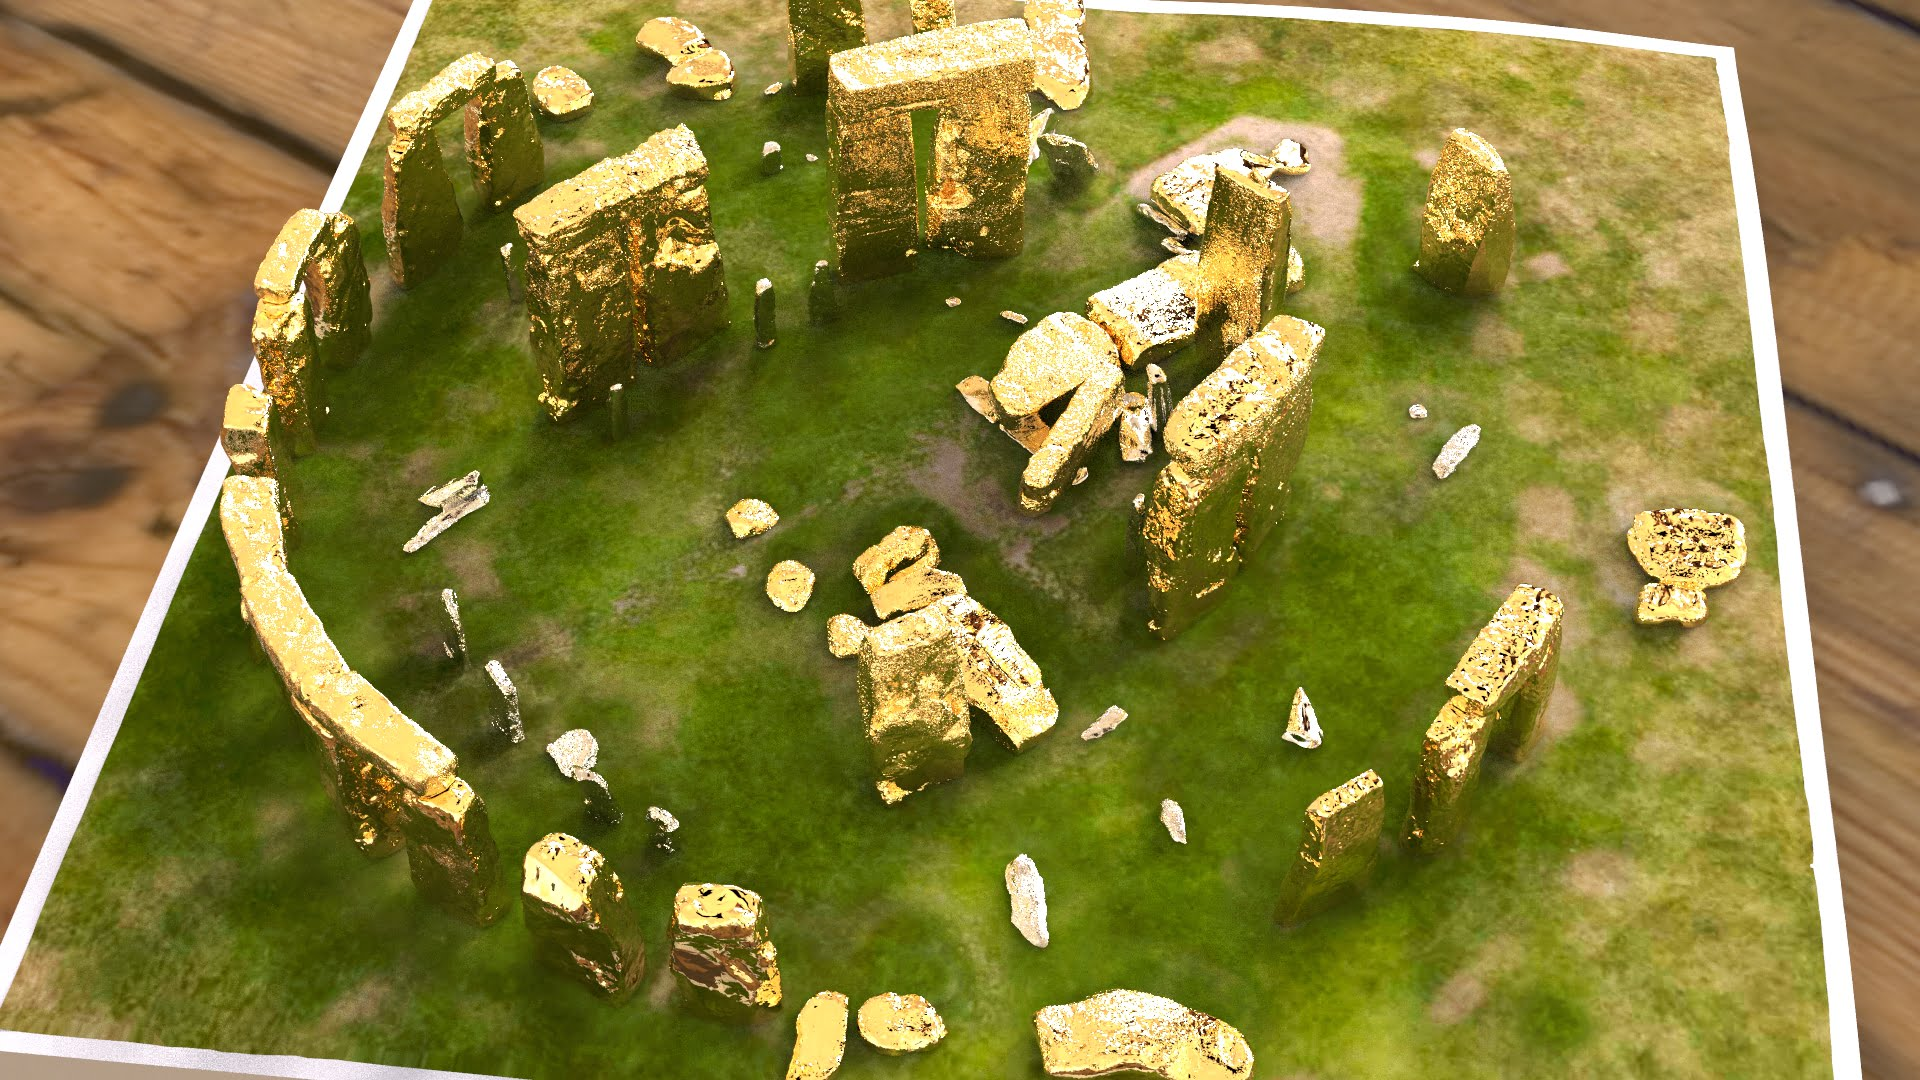 Buy Stonehenge Models: Gold sarsens and silver bluestones accurate and detailed Stonehenge model replica 001  - 200th scale pick n mix -